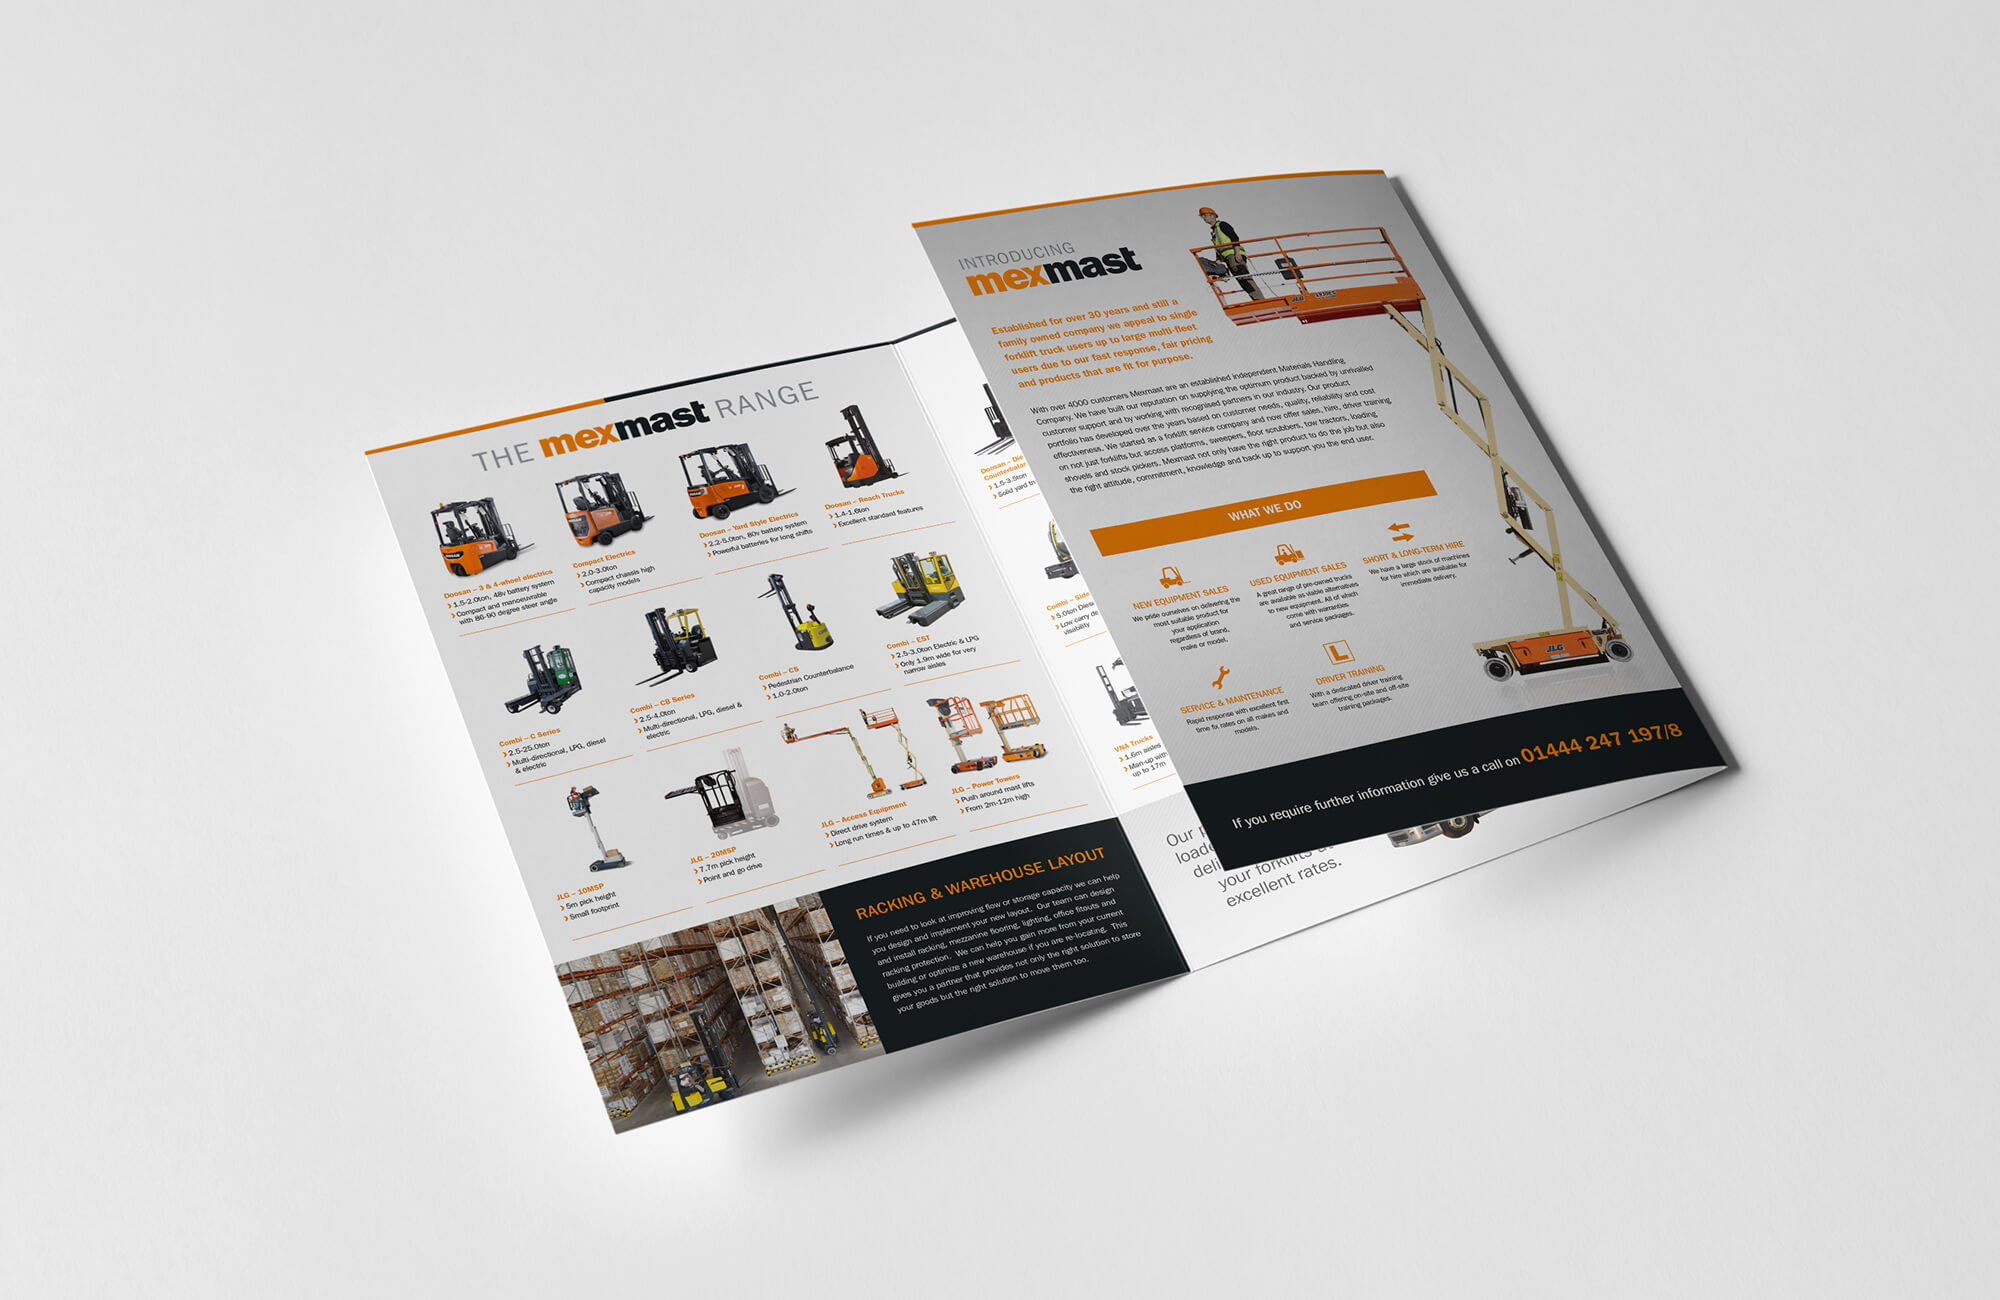 Mexmast Overview Brochure Design